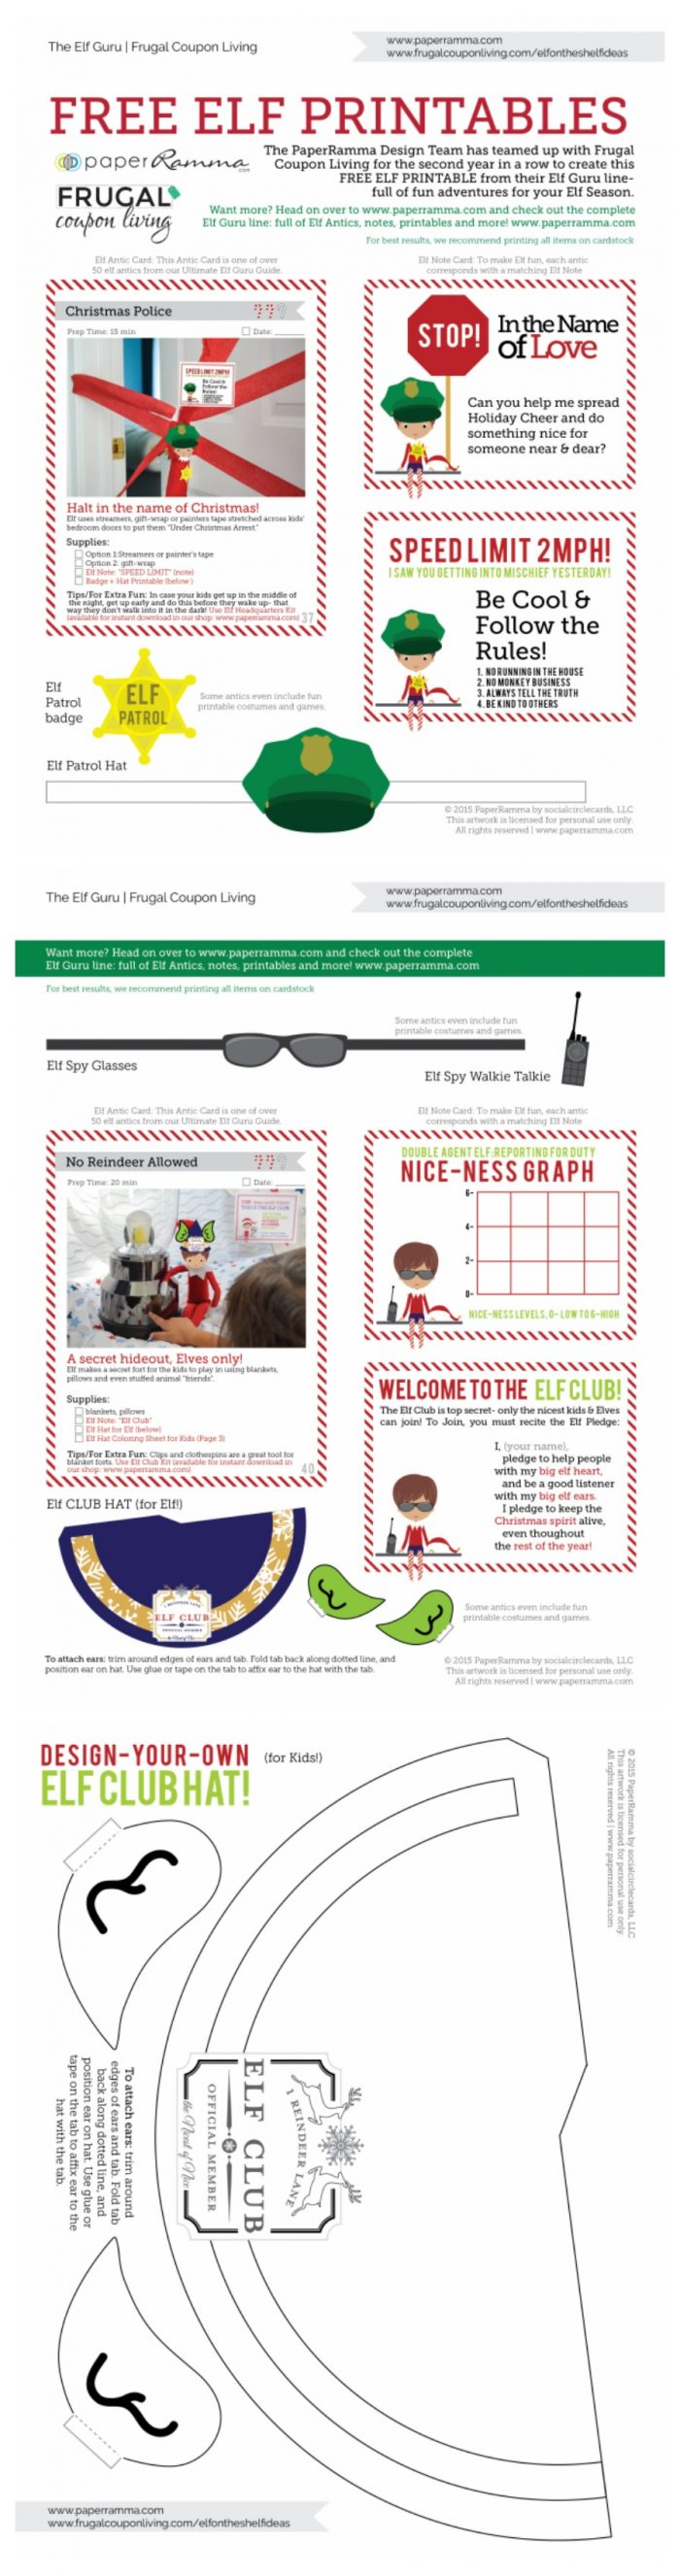 Elf-On-The-Shelf-Costumes-Collage-Vertical-Frugal-Coupon-Living